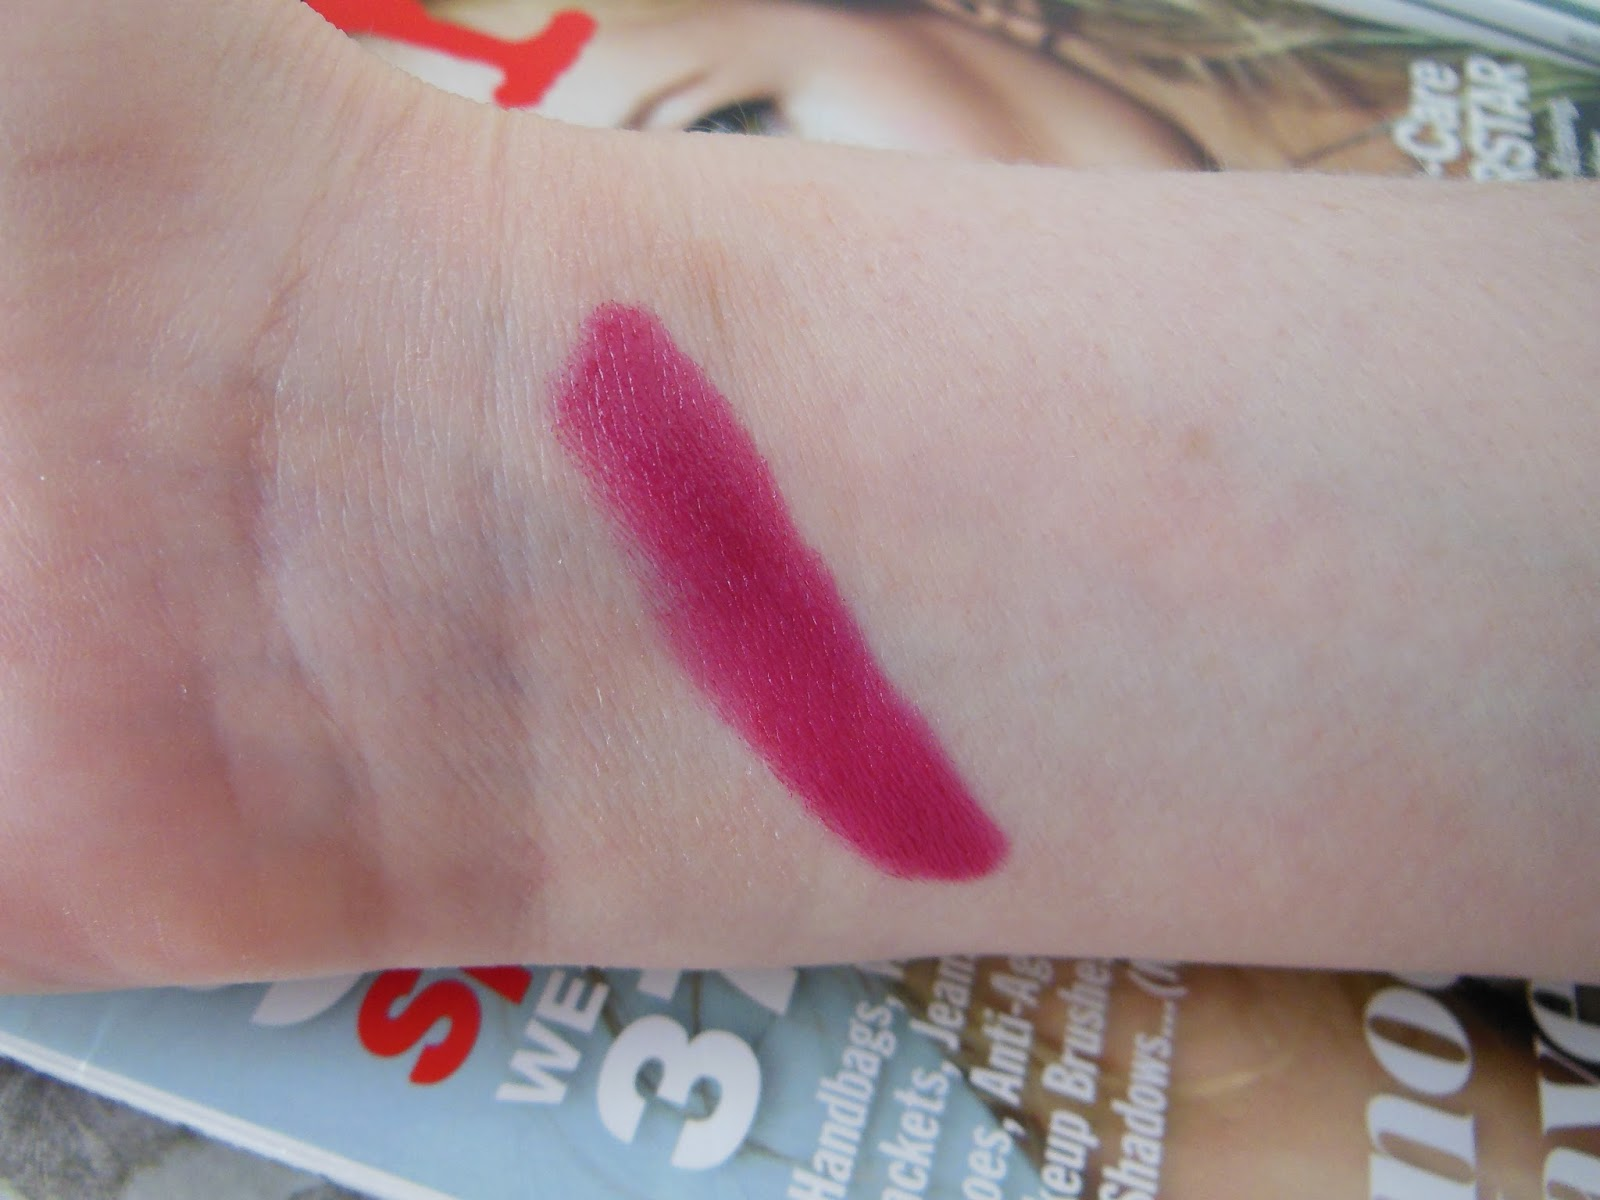 Bobbi Brown Bright Raspberry art stick swatch